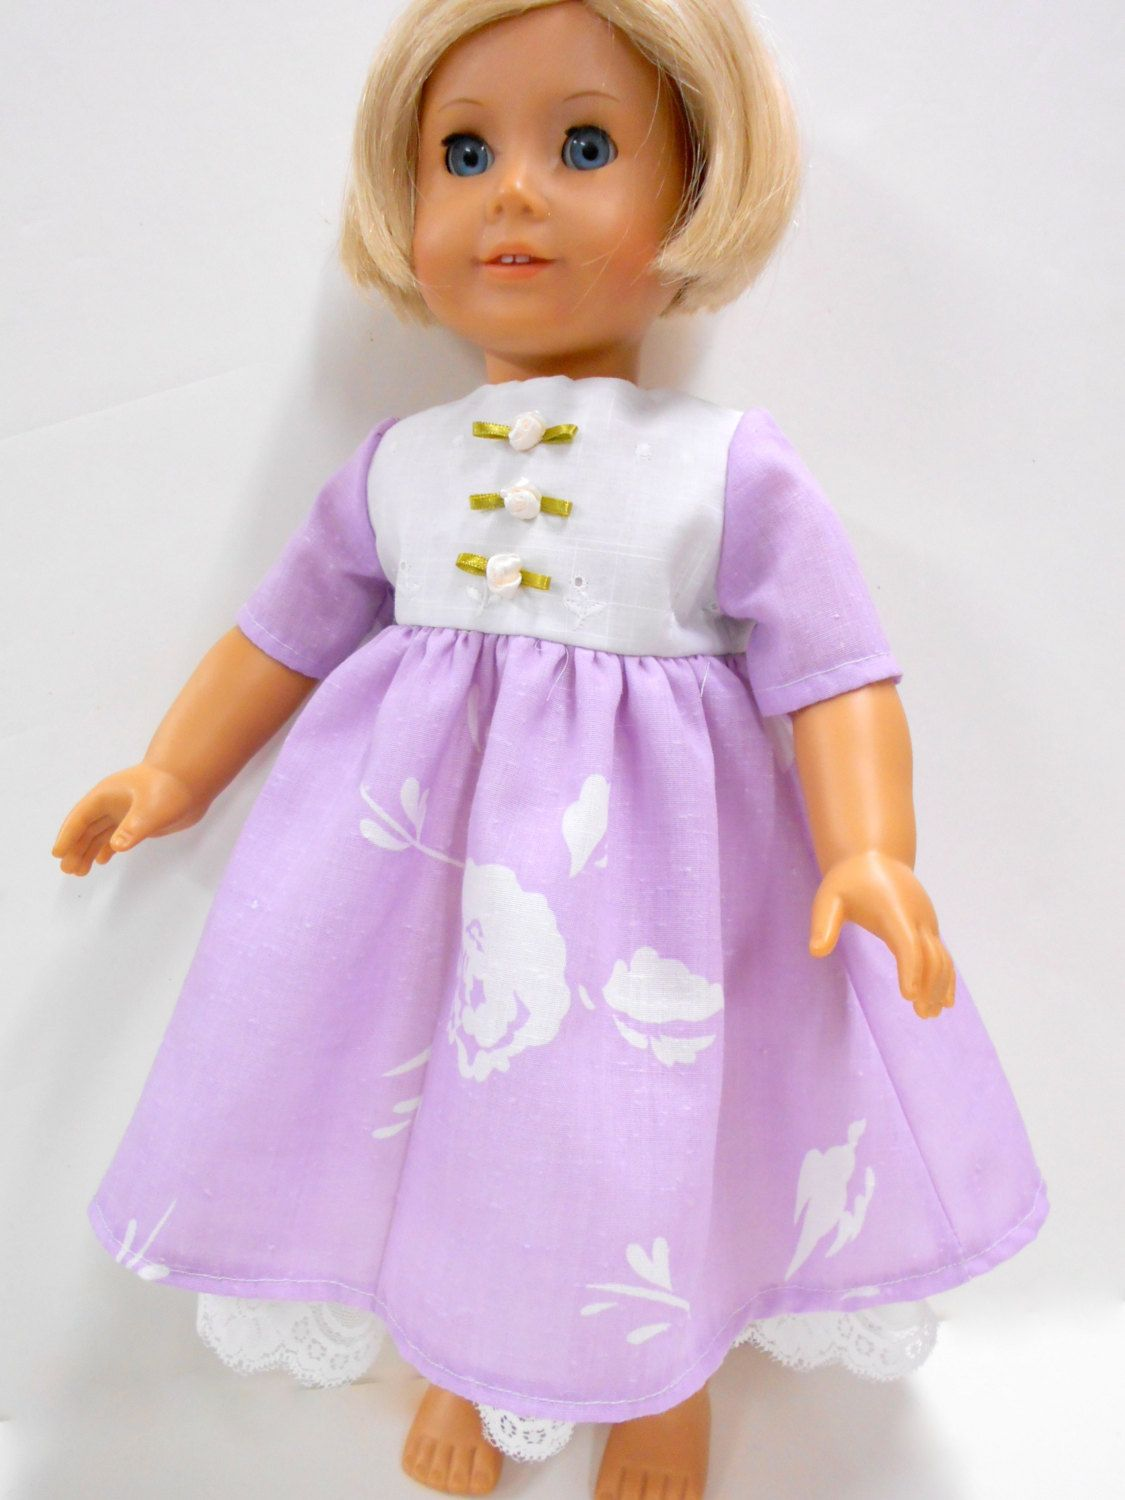 Lavender & Lace Dress for American Girl Doll, Dress for 18